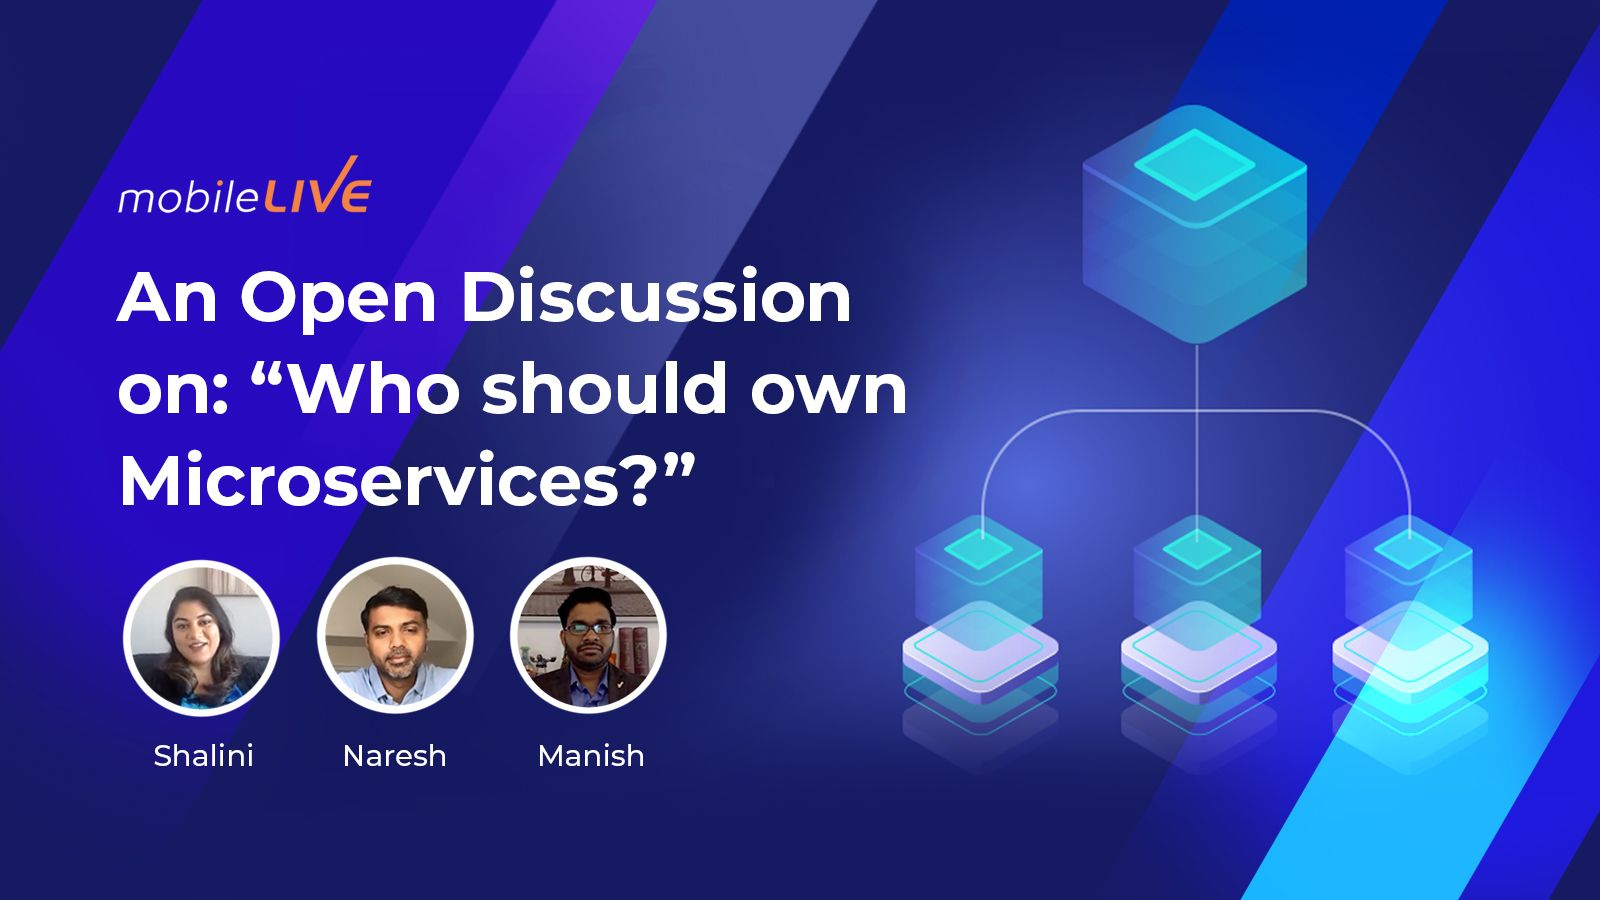 Watch the Who Should Own Microservices discussion video